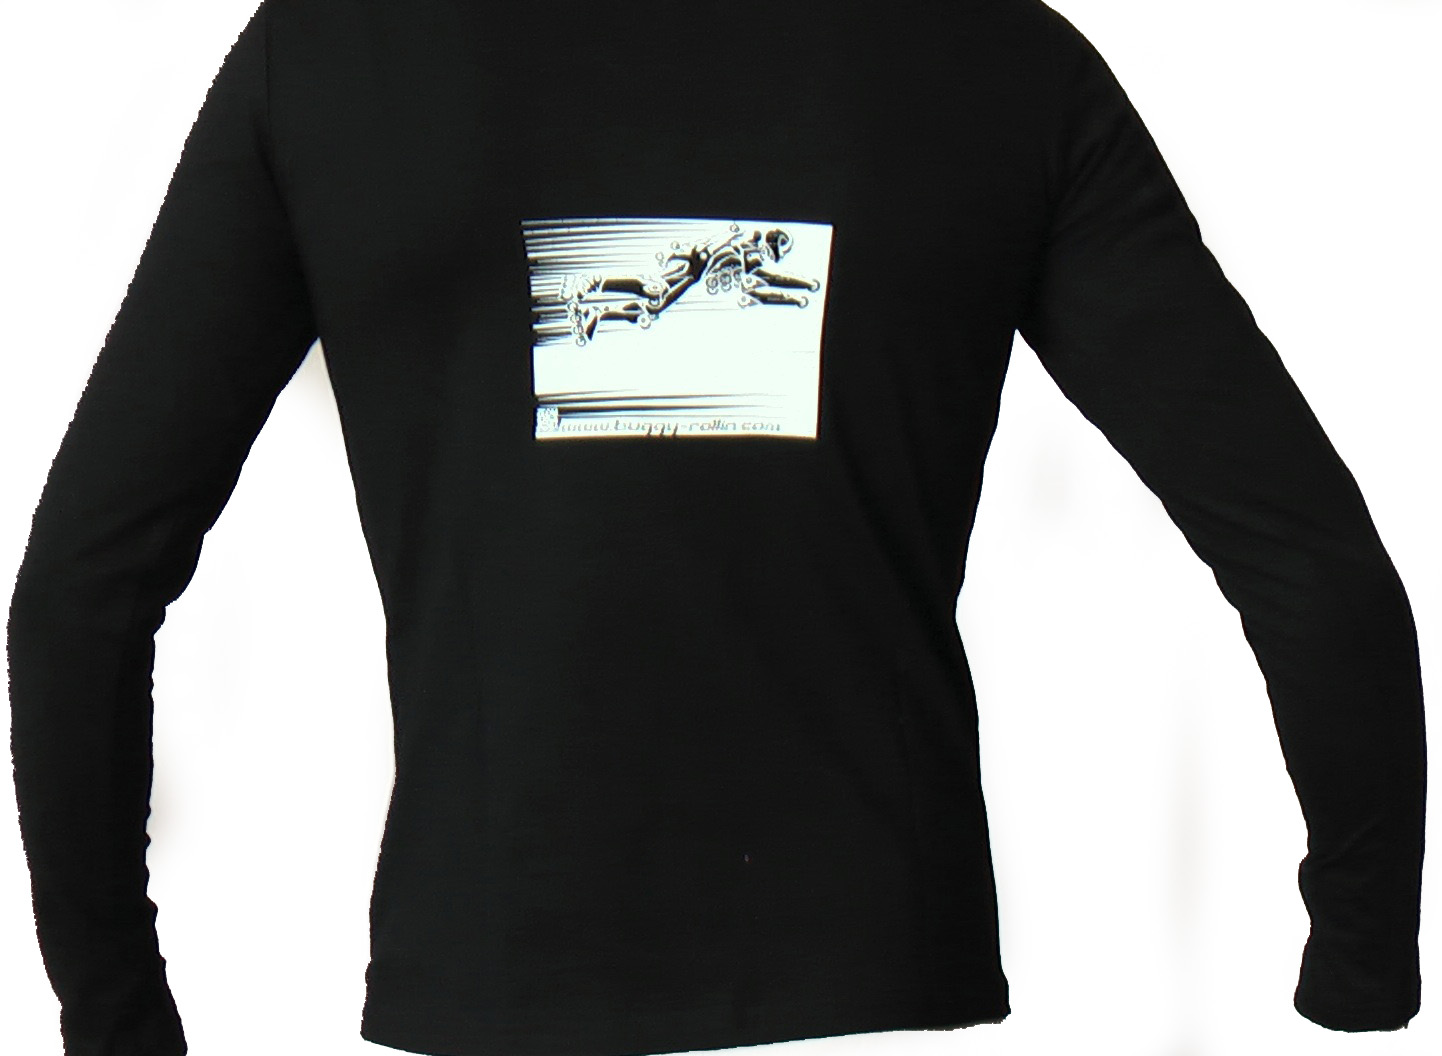 black long sleeve T-shirt view from back with at it center the drawing of buggy rollin pilot flying on a long jump